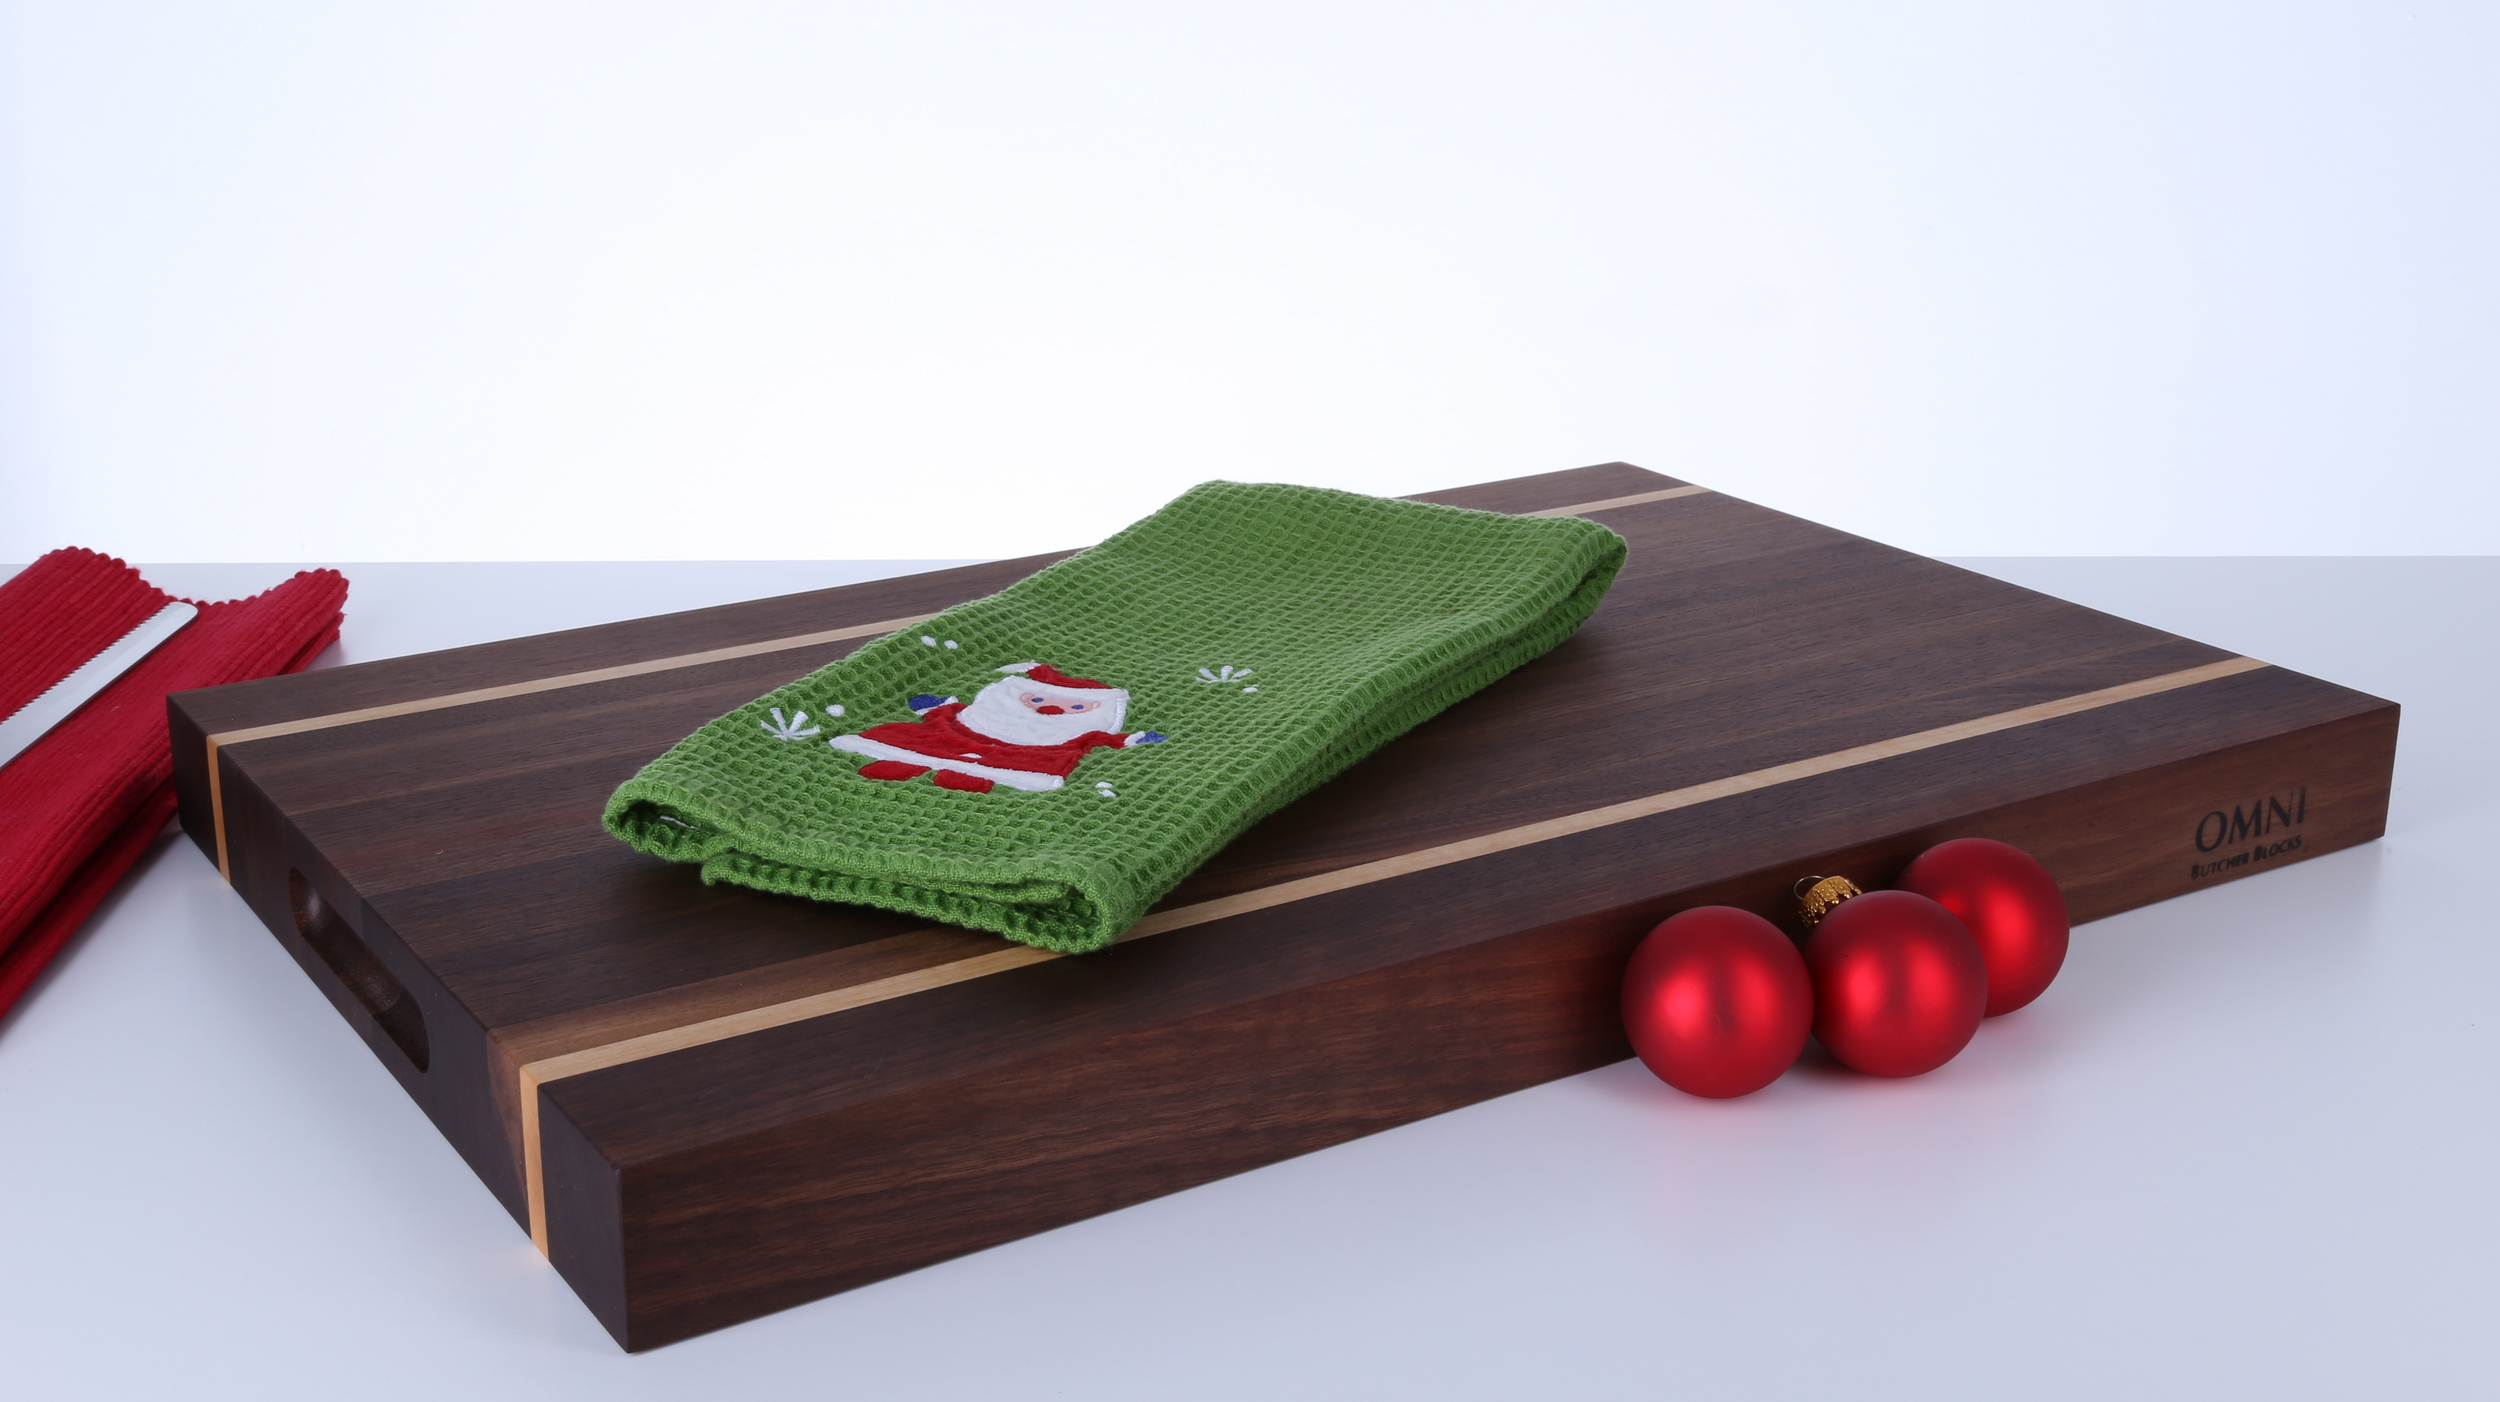 """Beautify your holiday table with this gorgeous Black Walnut Serving Board. Hard Sugar Maple accent strips provide a stunning contrast to the rich, chocolate hues of the Walnut.  Approximate size 20"""" x 14"""" x 1.5"""" with cut out handles for easy lifting. $165.00 plus applicable taxes and shipping."""